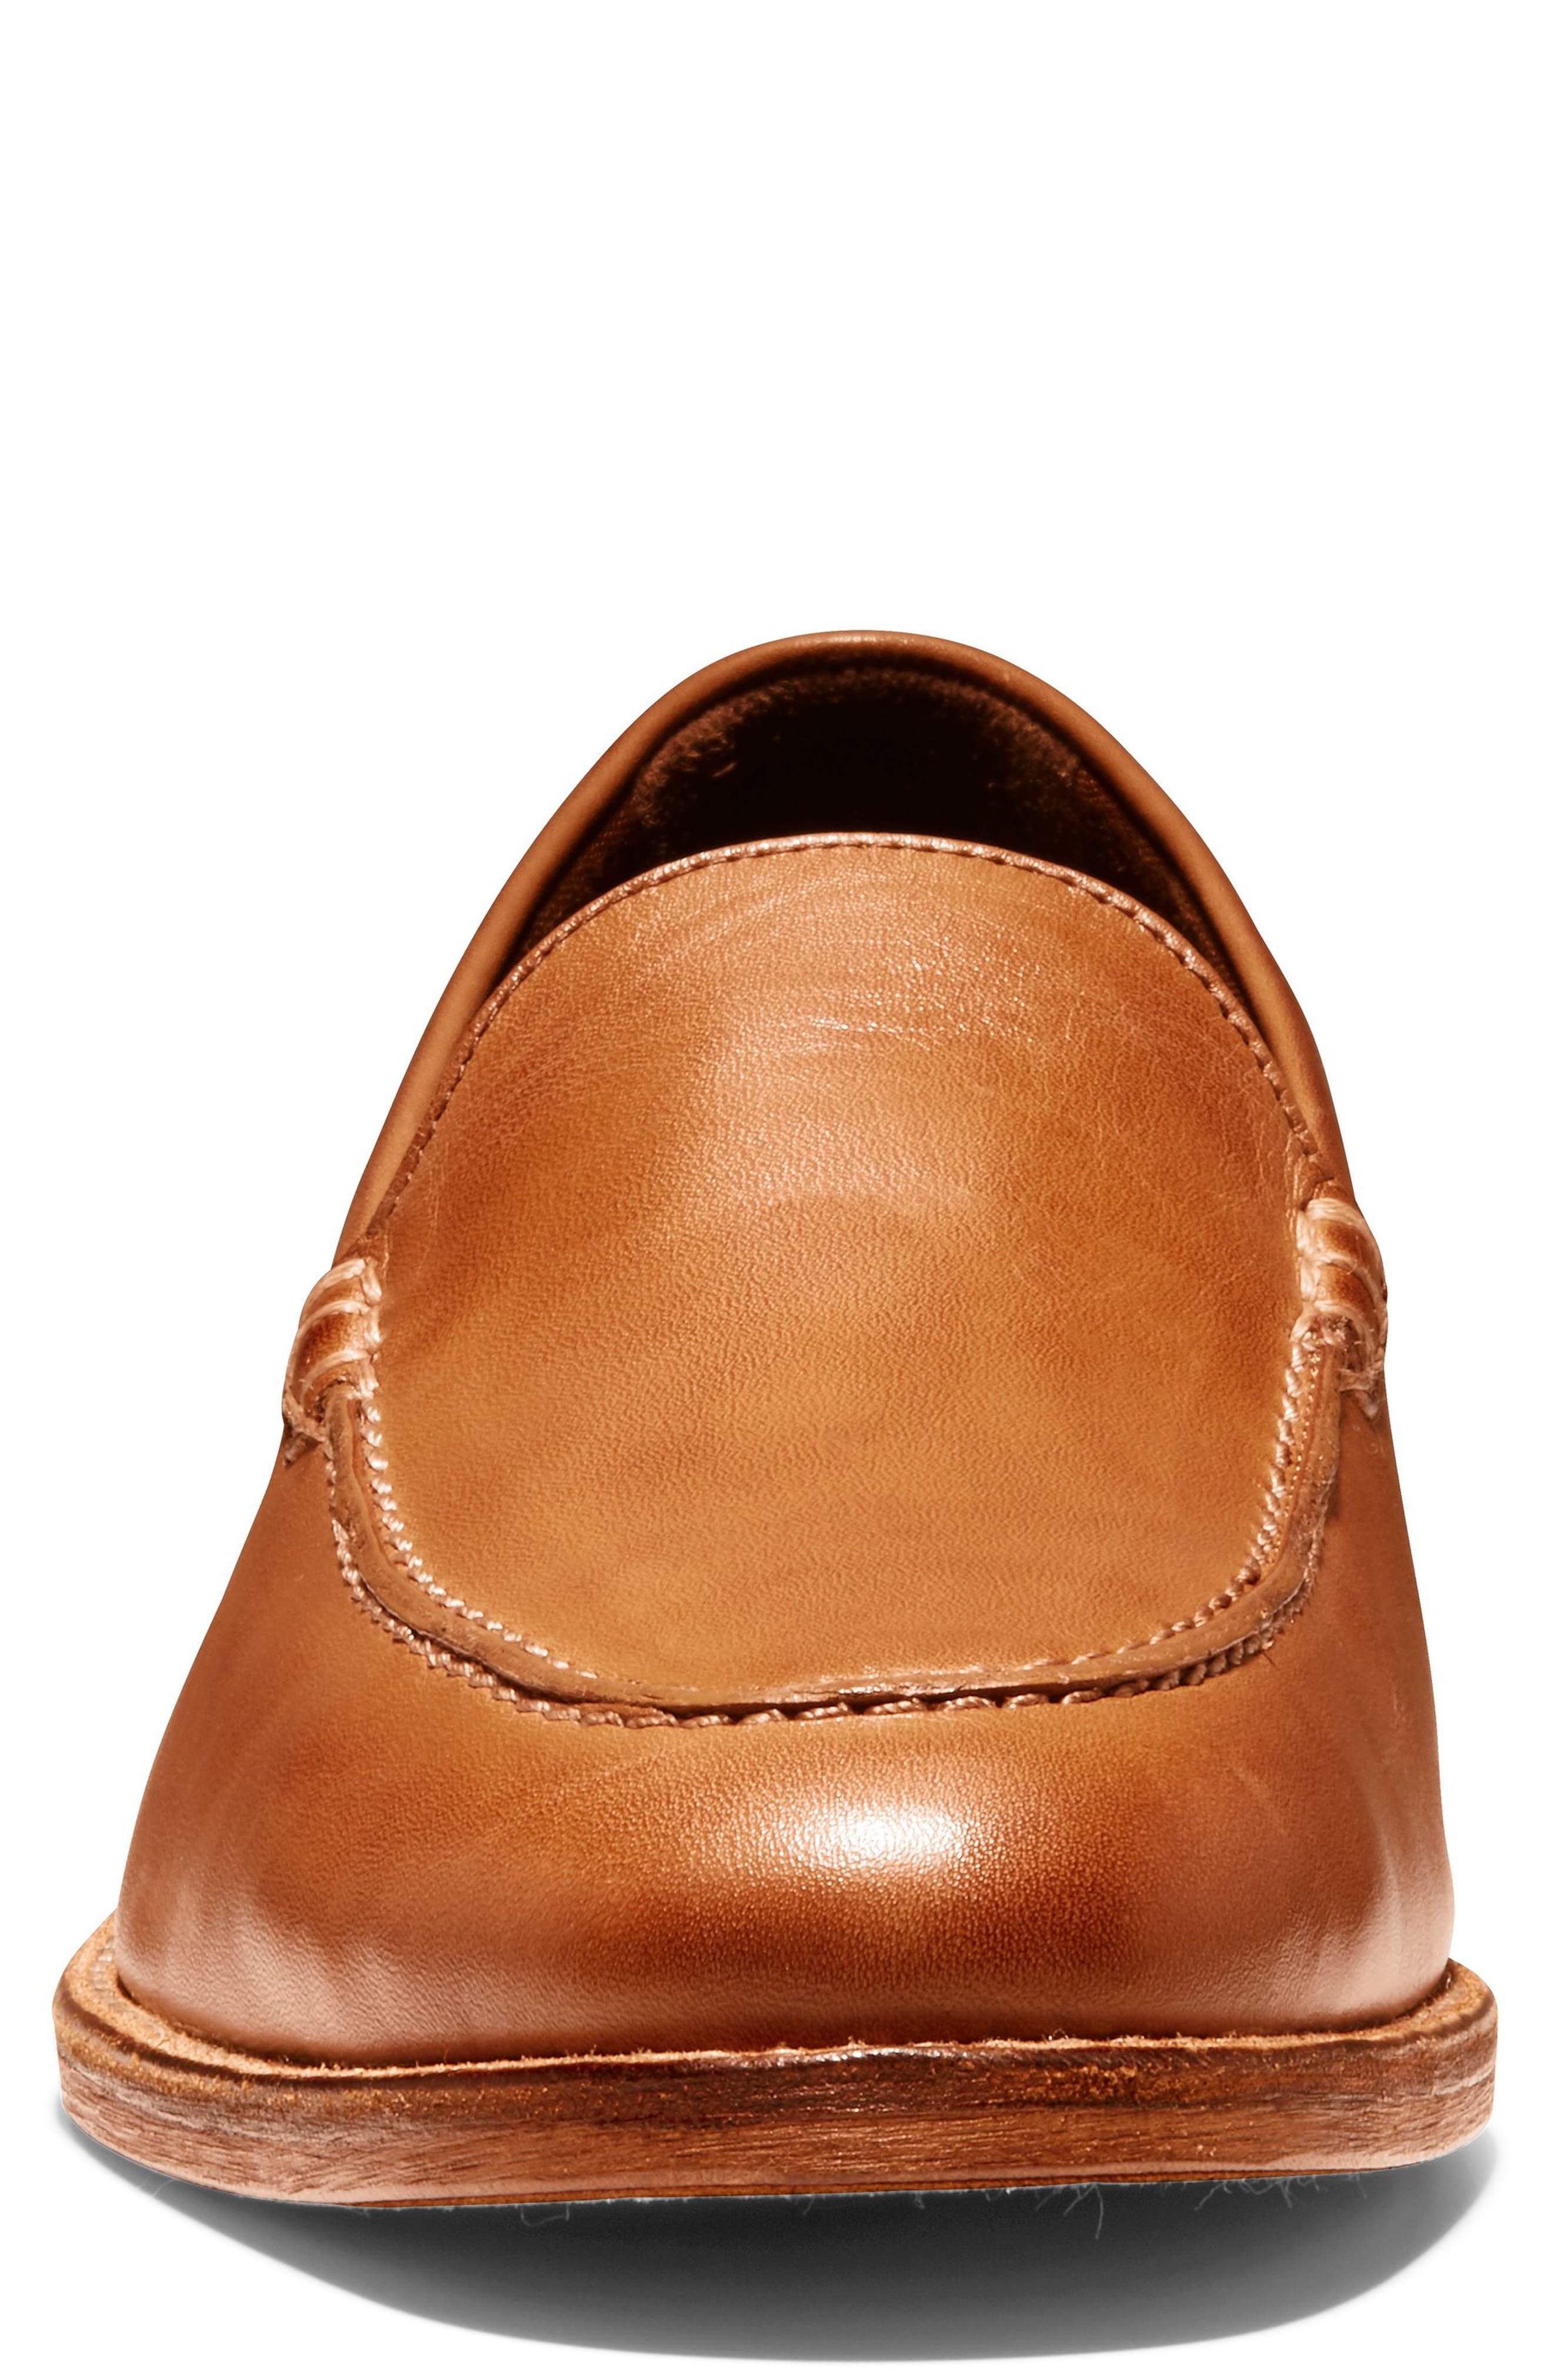 COLE HAAN, Feathercraft Grand Venetian Loafer, Alternate thumbnail 4, color, BRITISH TAN LEATHER